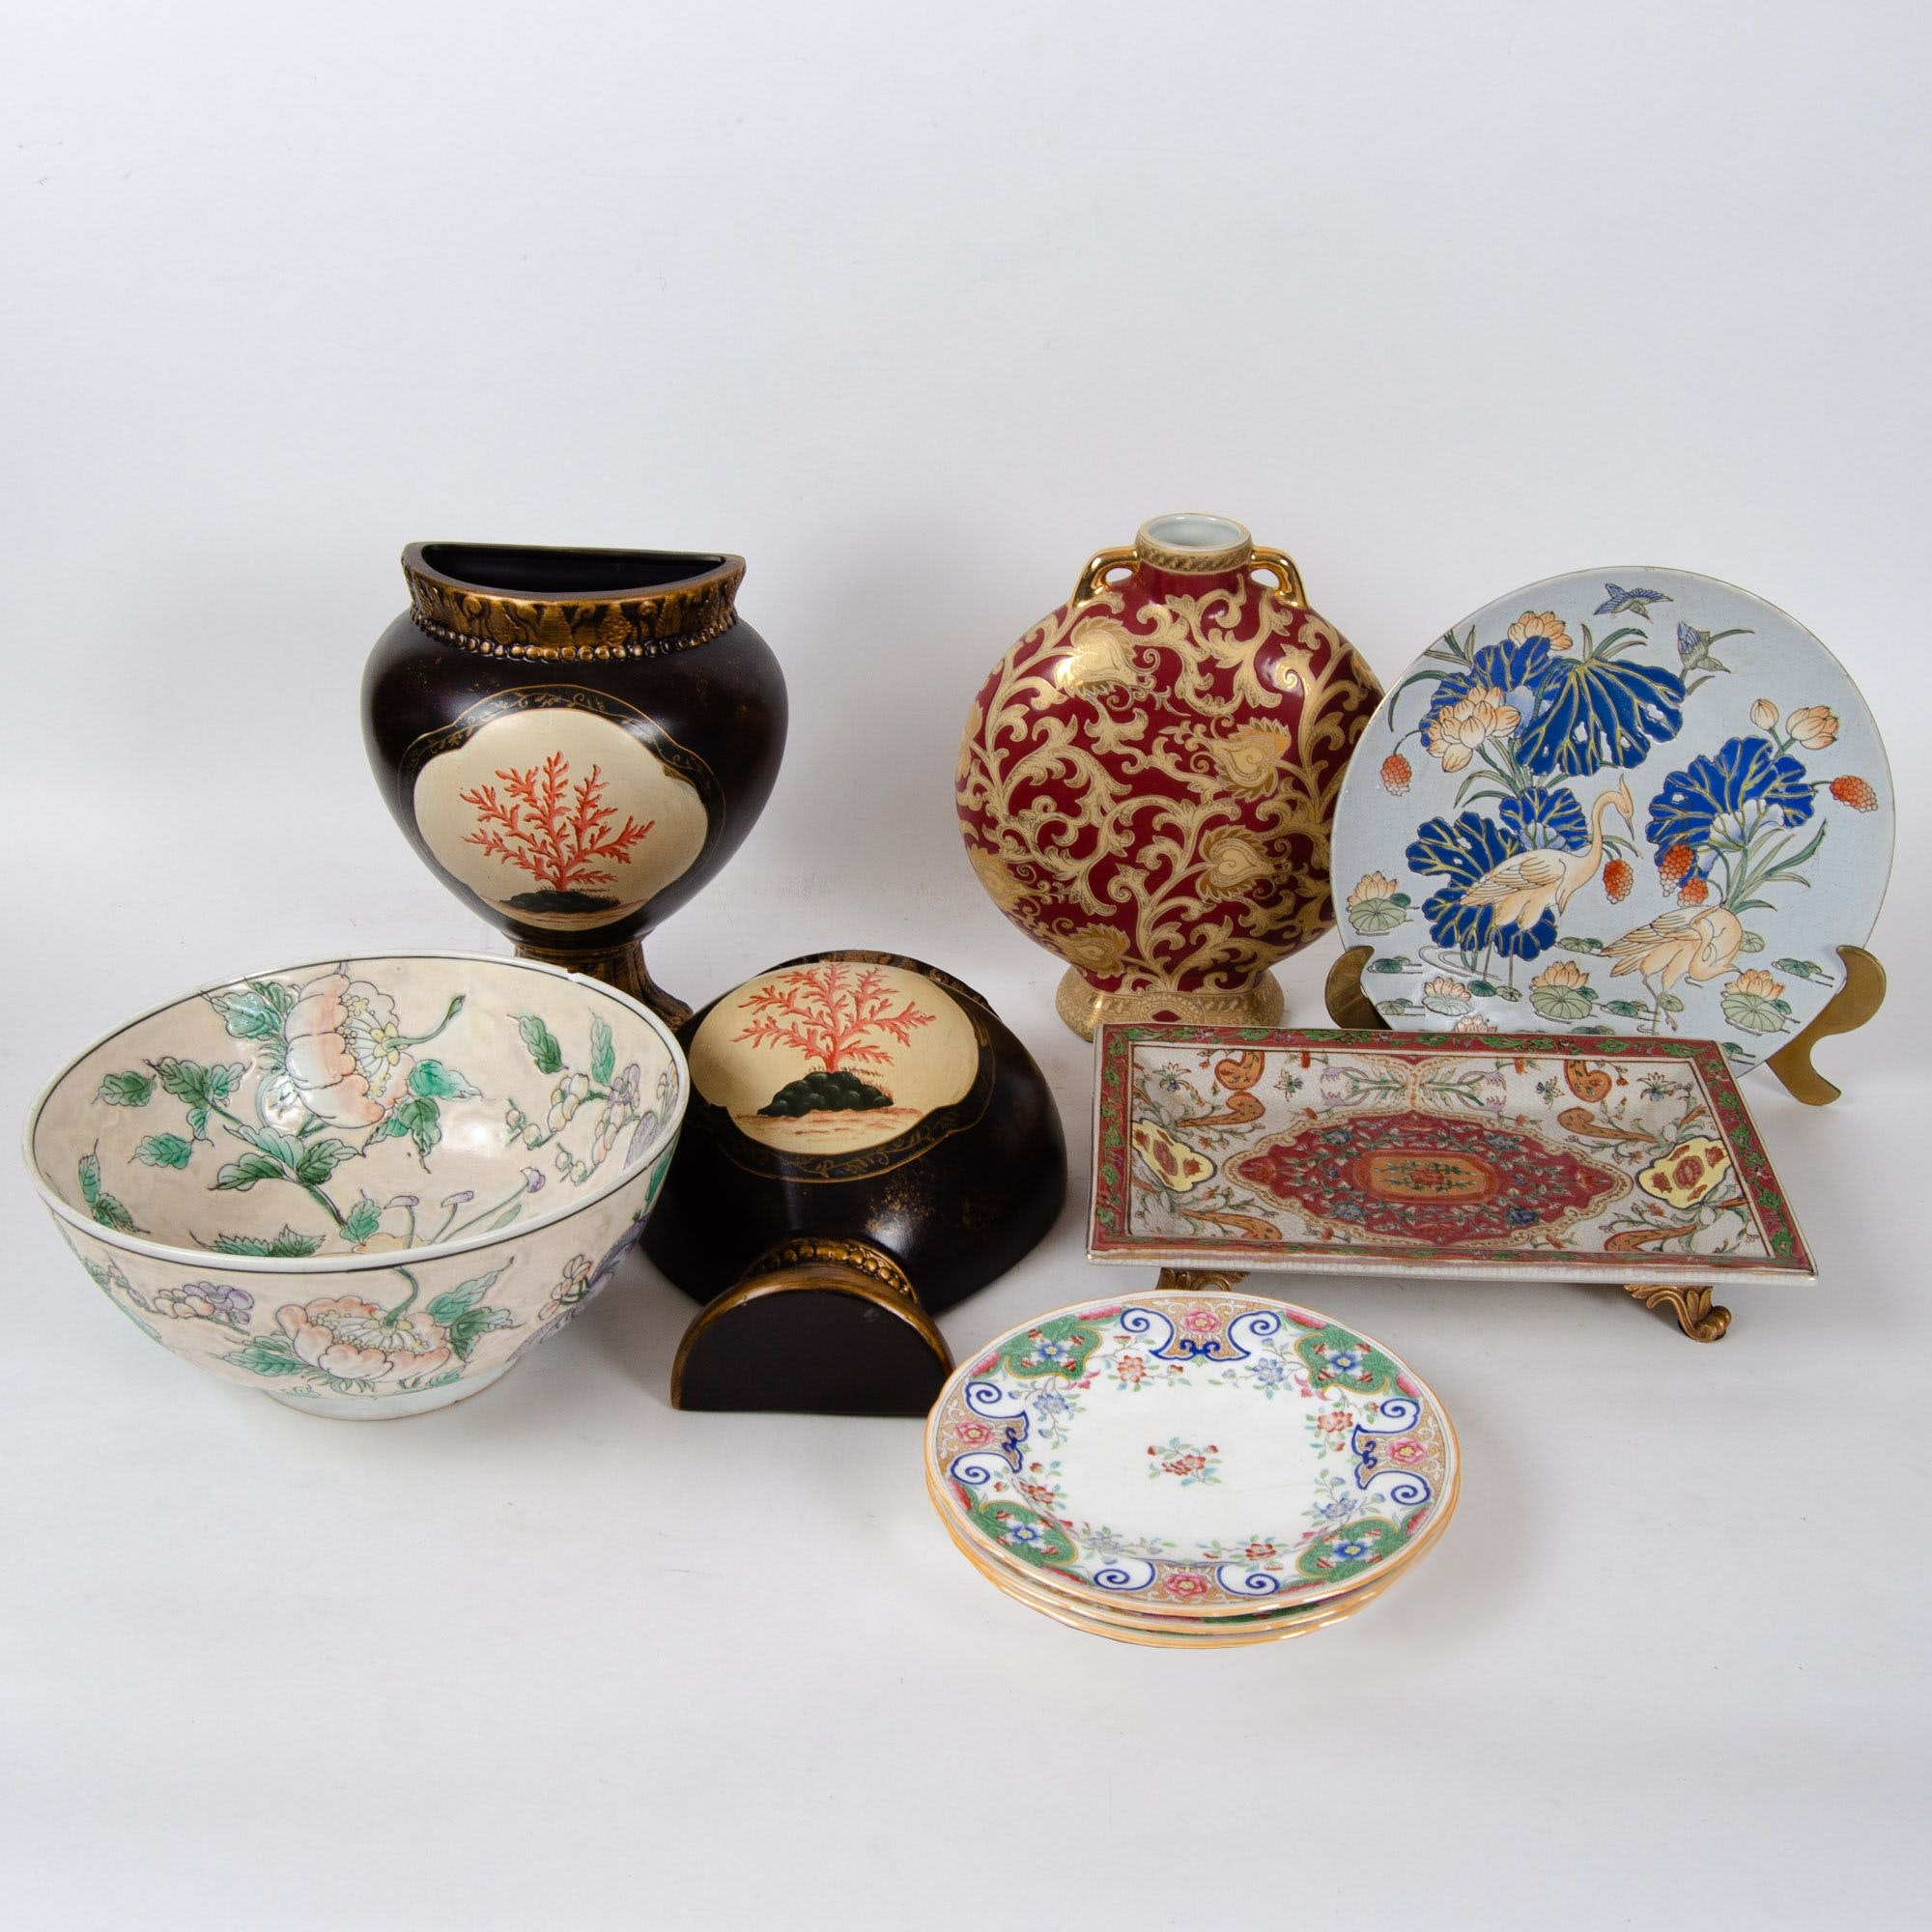 Antique Minton Plates and Assorted Asian Decor